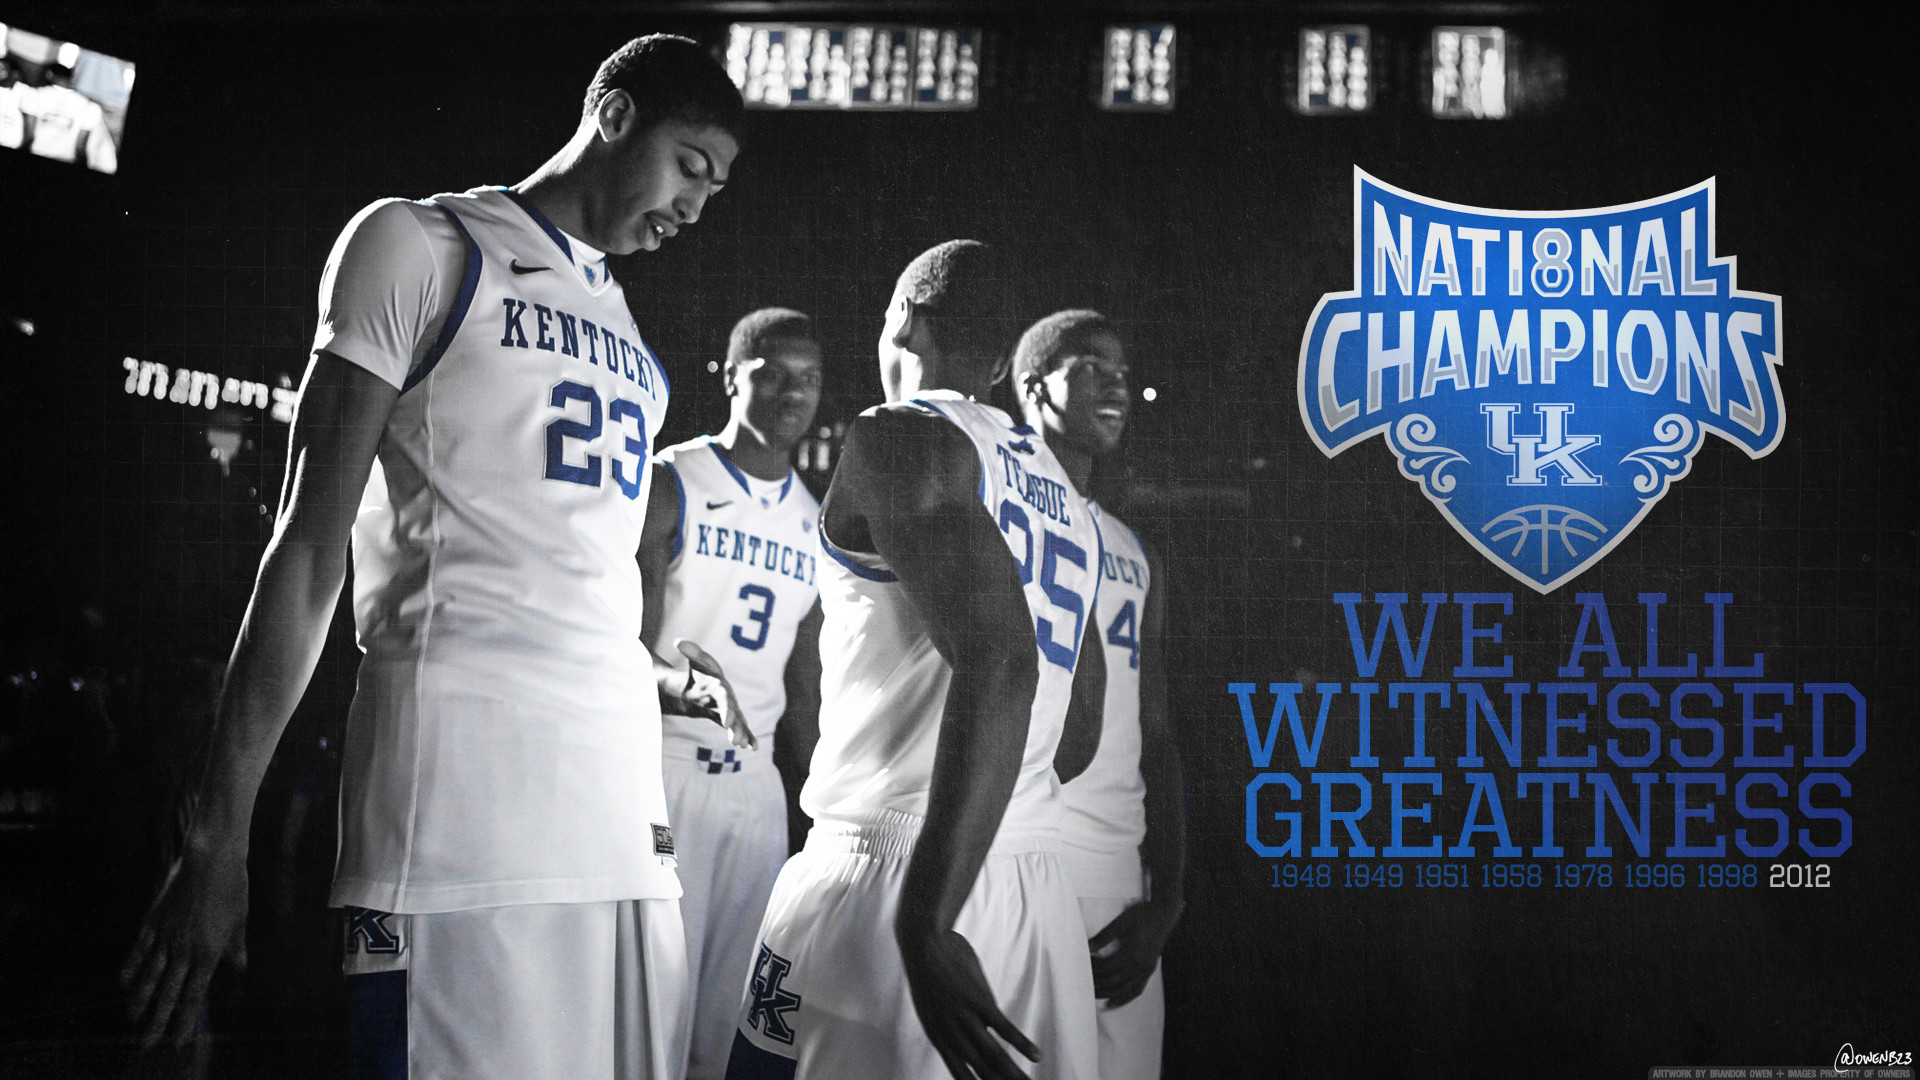 1920x1080 University of Kentucky Chrome Themes, iOS Wallpapers Blogs for 1280×960  Kentucky Basketball Wallpapers (47 Wallpapers) | Adorable Wallpapers |  Pinterest ...